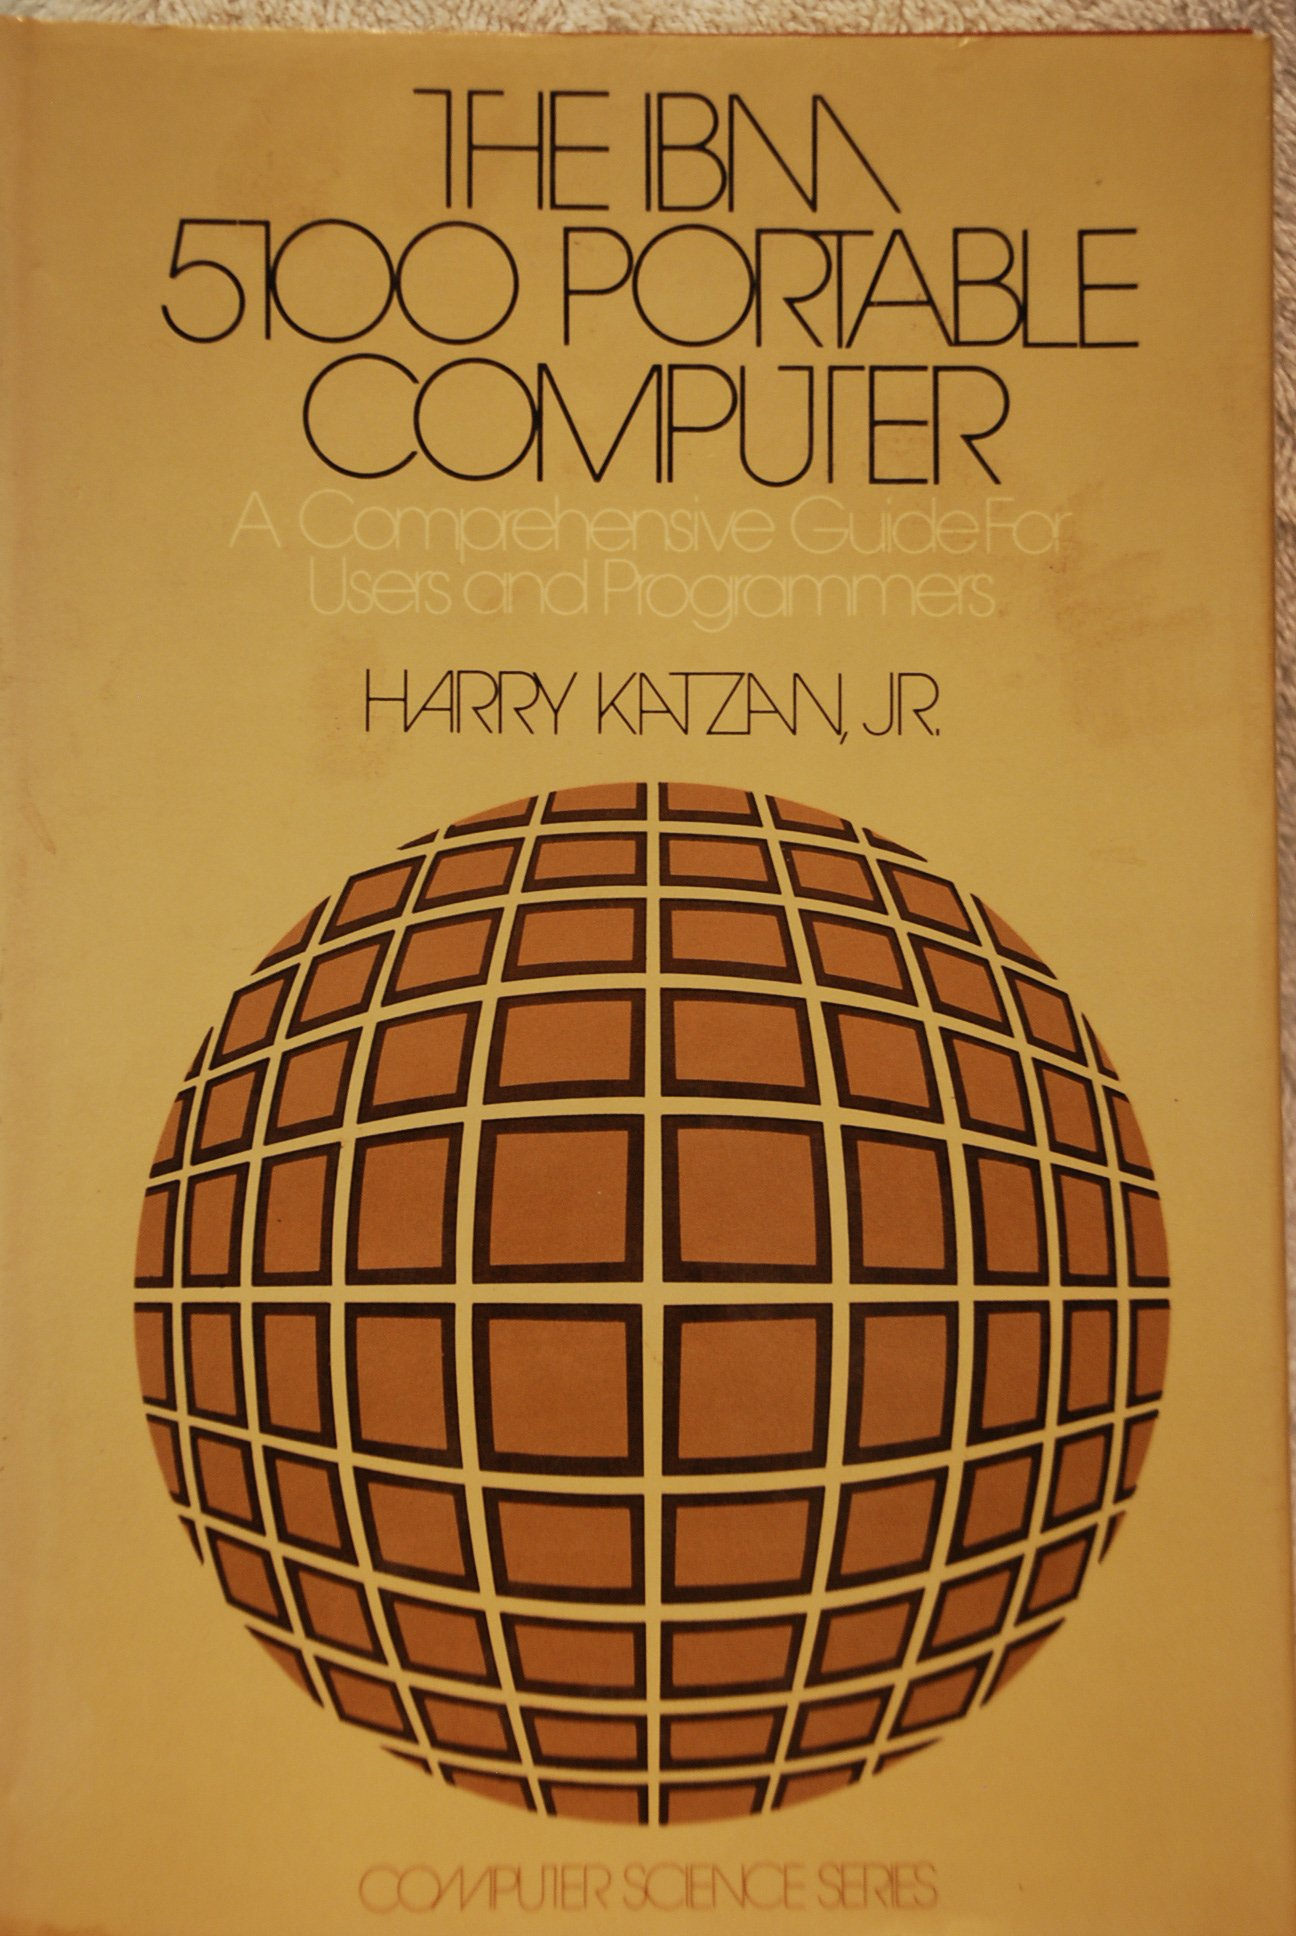 The IBM 5100 portable computer: A comprehensive guide for